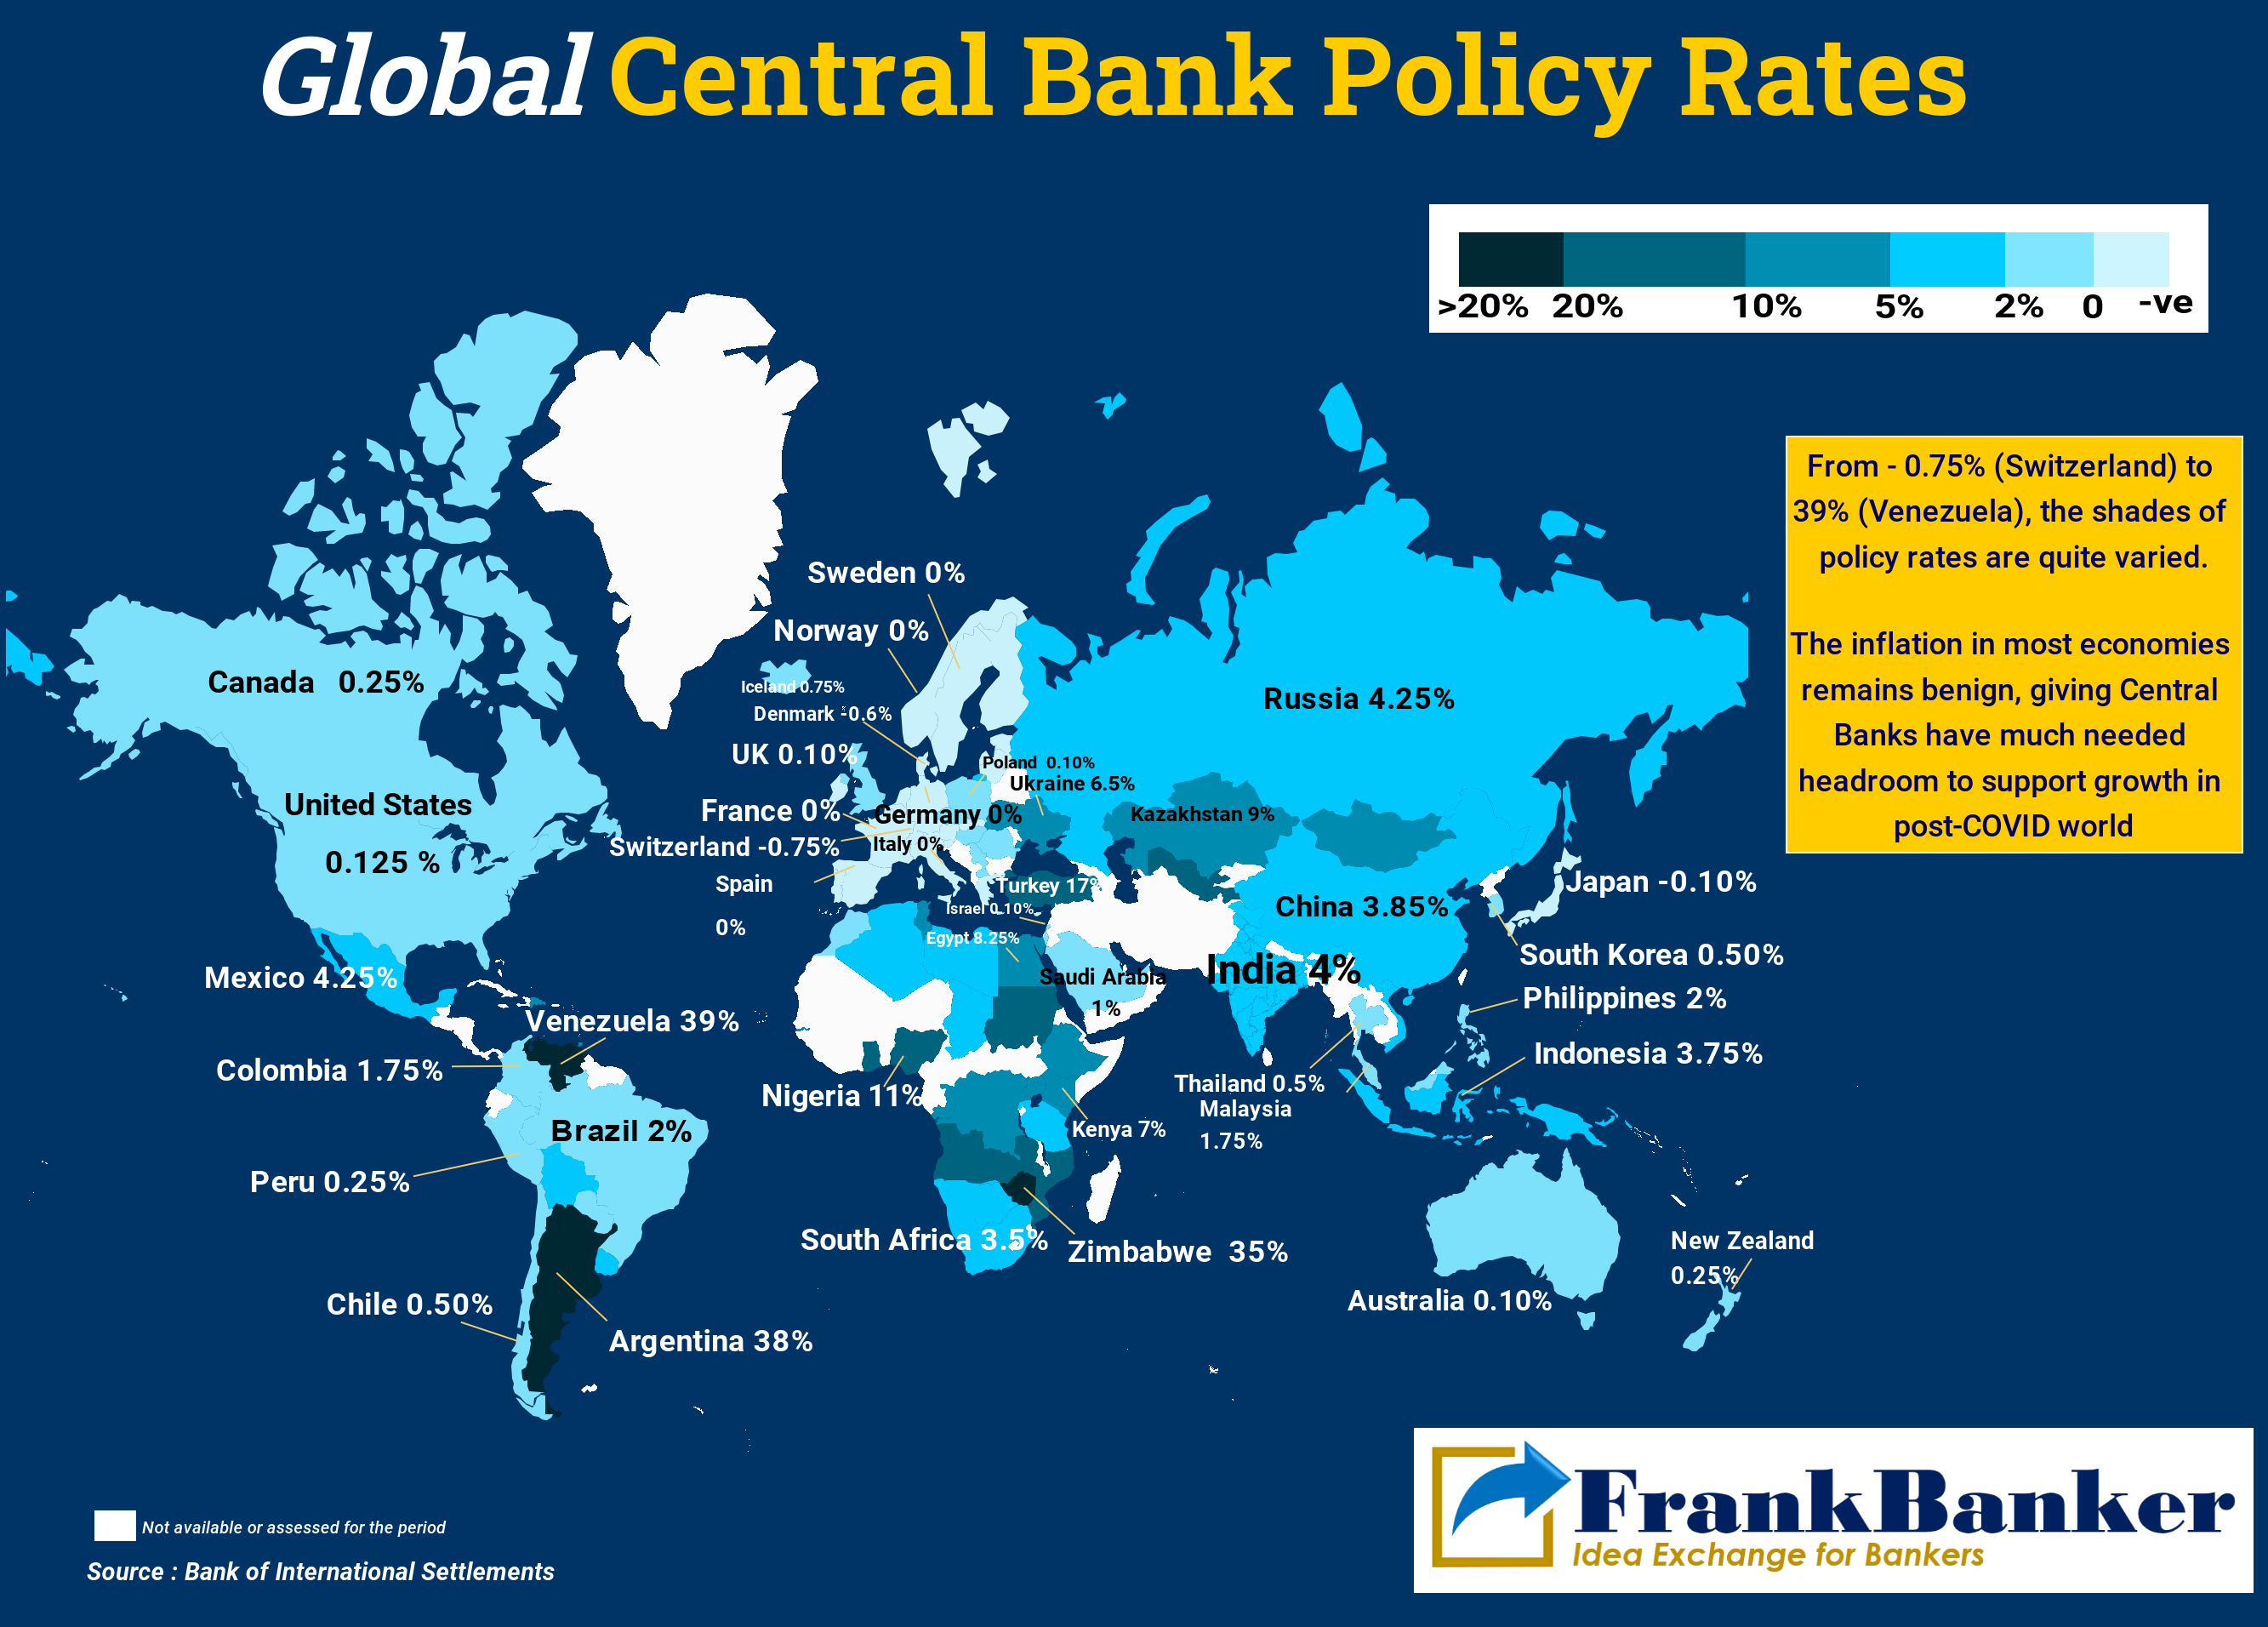 Global Central Bank Policy Rates